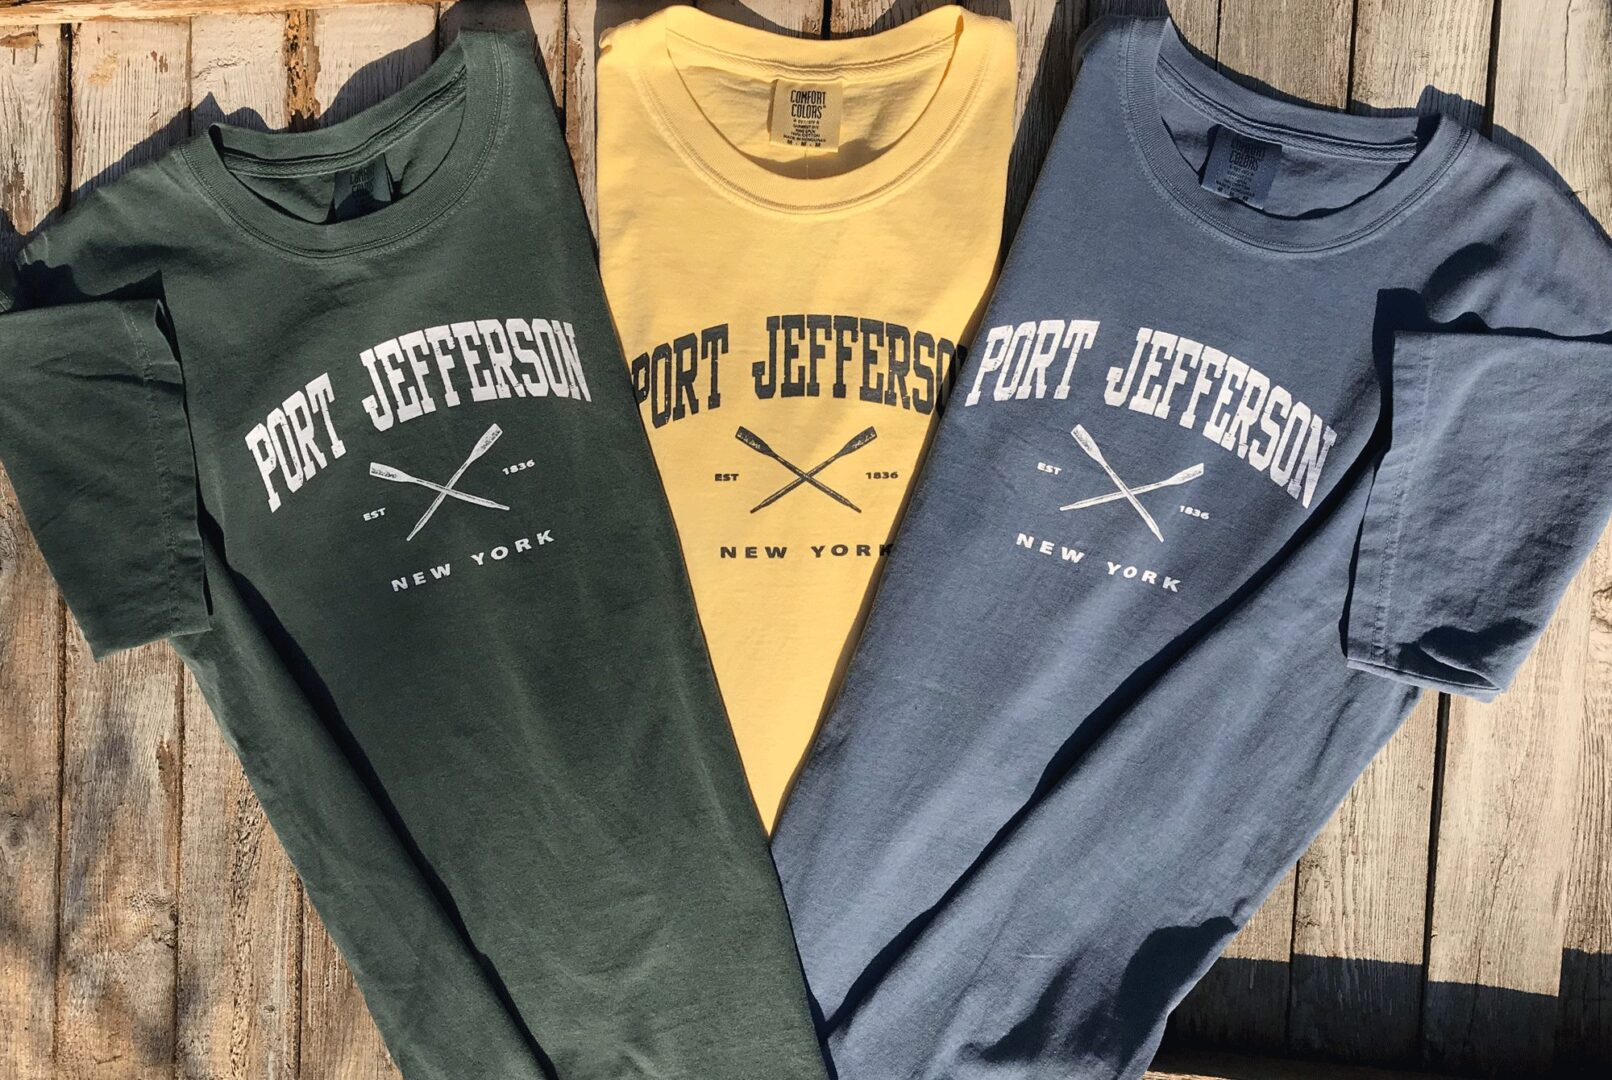 multi-colored shirts with Port Jefferson text on a wooden surface